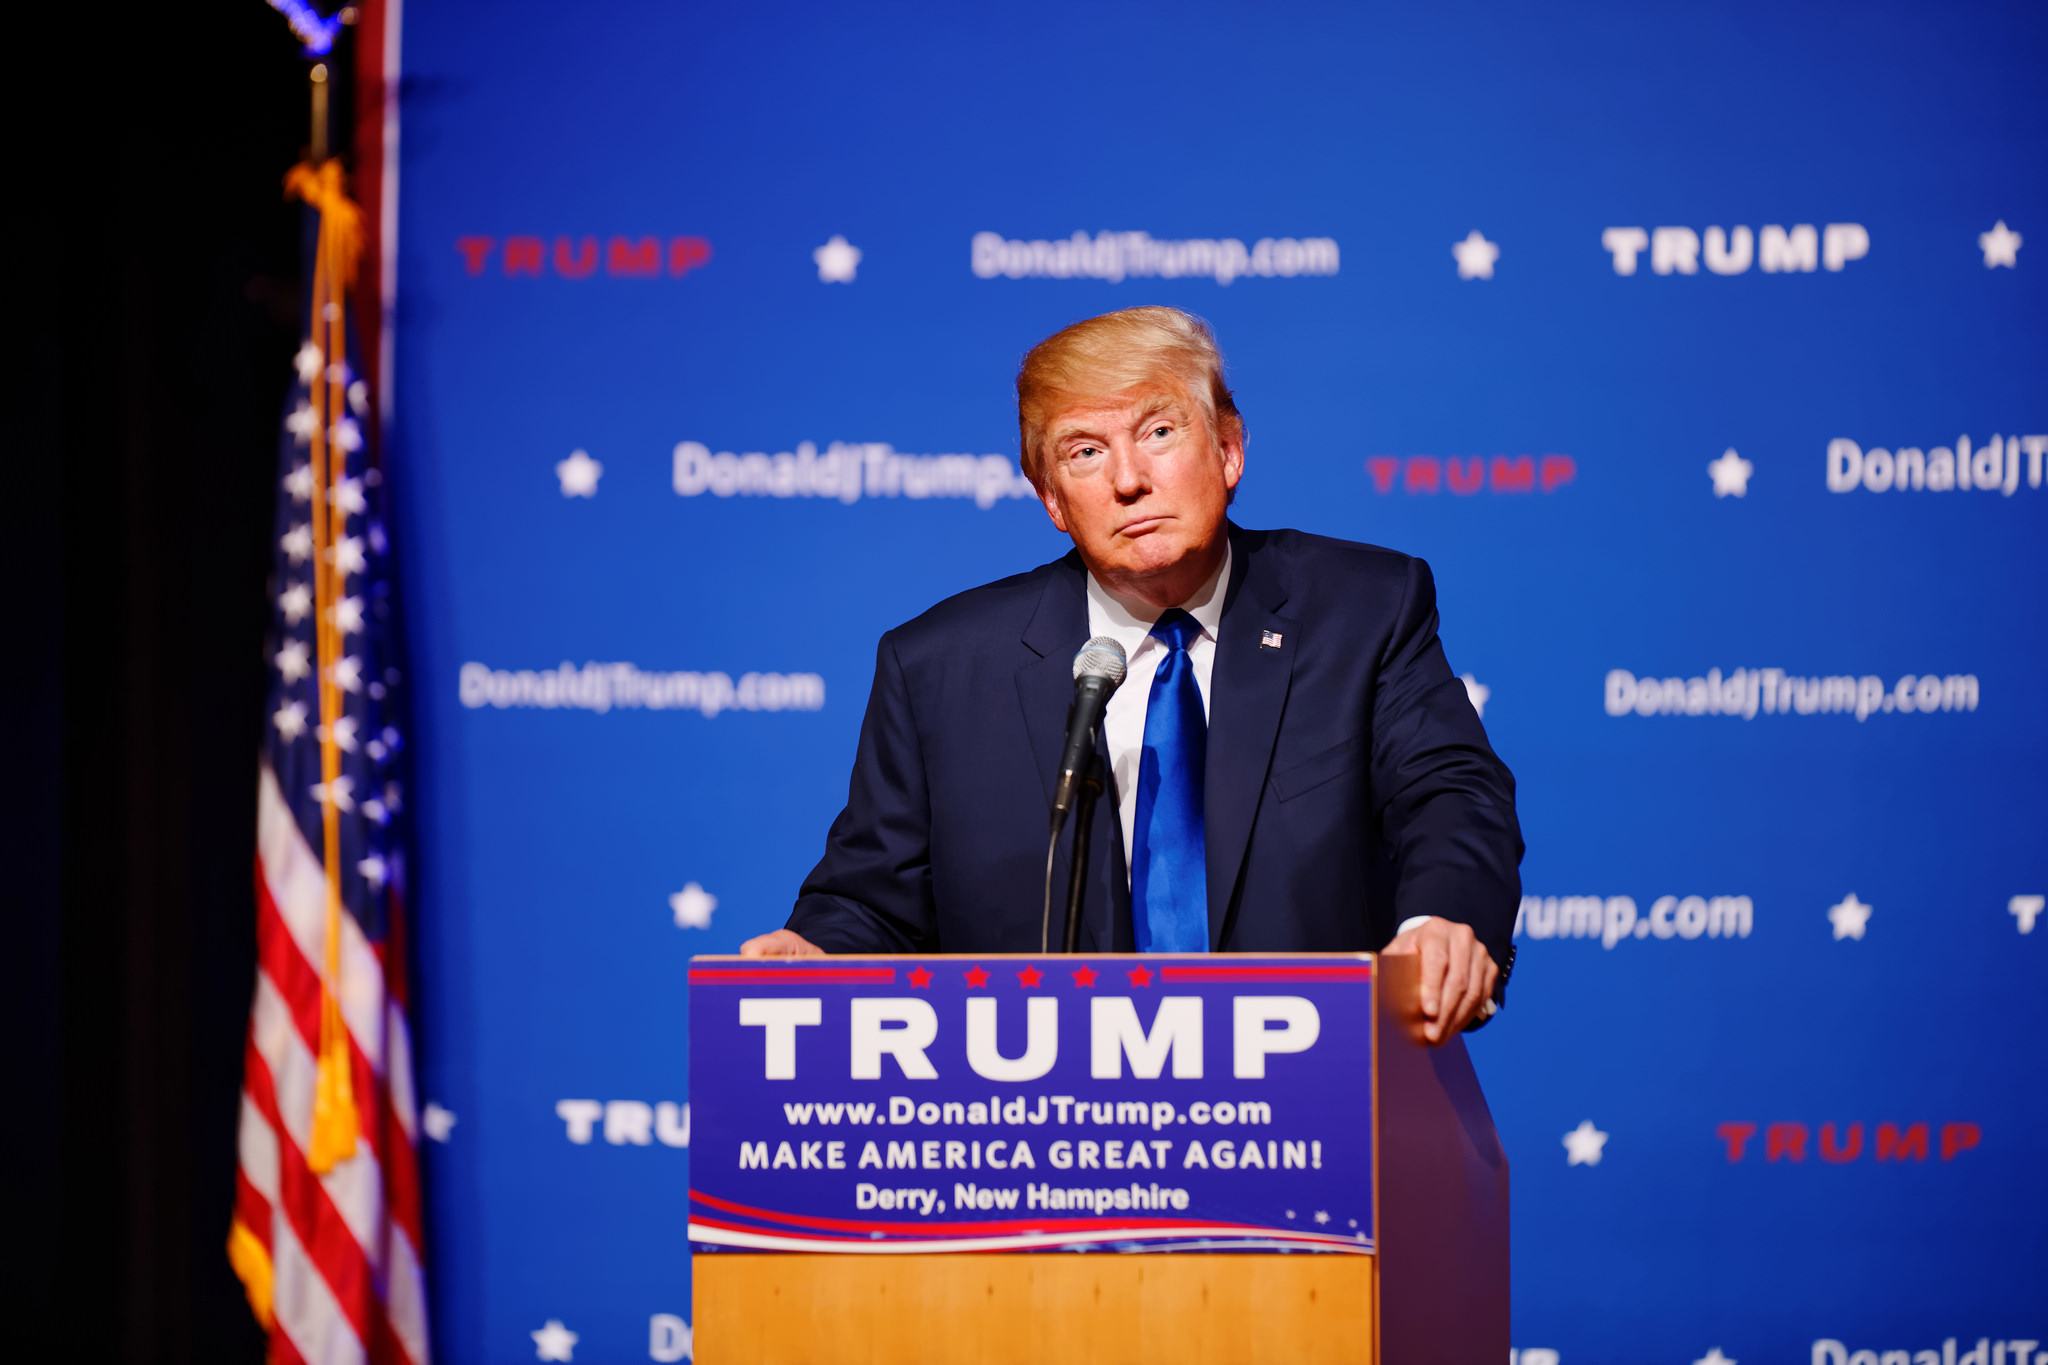 President-elect  Donald Trump , appearing in 2015 at a town hall event at Pinkerton Academy in Derry, NH. President-elect Trump has not announced his plans for the leadership of the  U.S. Attorney's Office  in Brooklyn, now headed by U.S. Attorney  Robert Capers . Source :  Michael Vadon/Flickr  (CC 2.0 Generic)